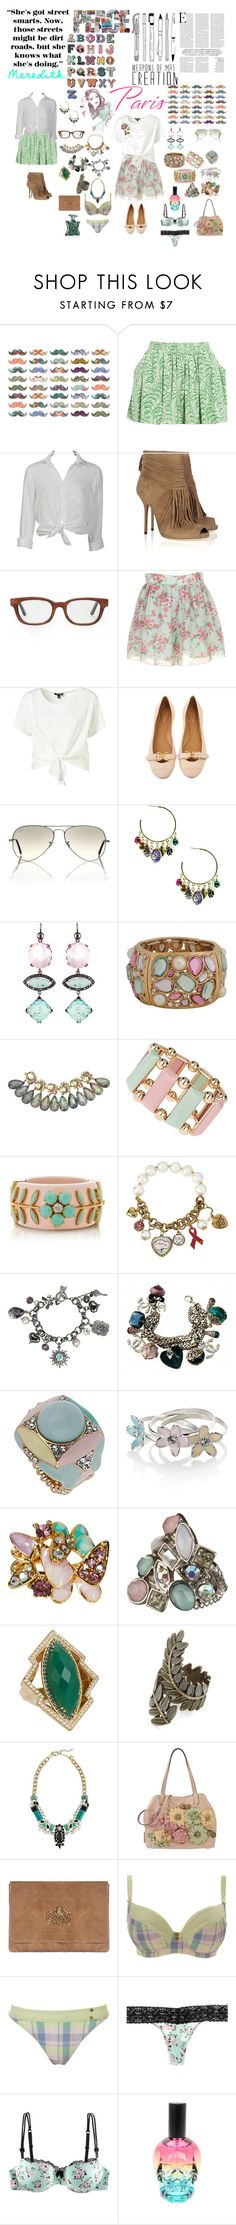 """""""meredith x paris"""" by dani-elle ❤ liked on Polyvore featuring Jessica Simpson, DuÅ¡an, Vanessa Bruno Athé, Charlotte Russe, Gucci, Illesteva, Rayban, BKE, Pintaldi Maurizio and Forever 21"""